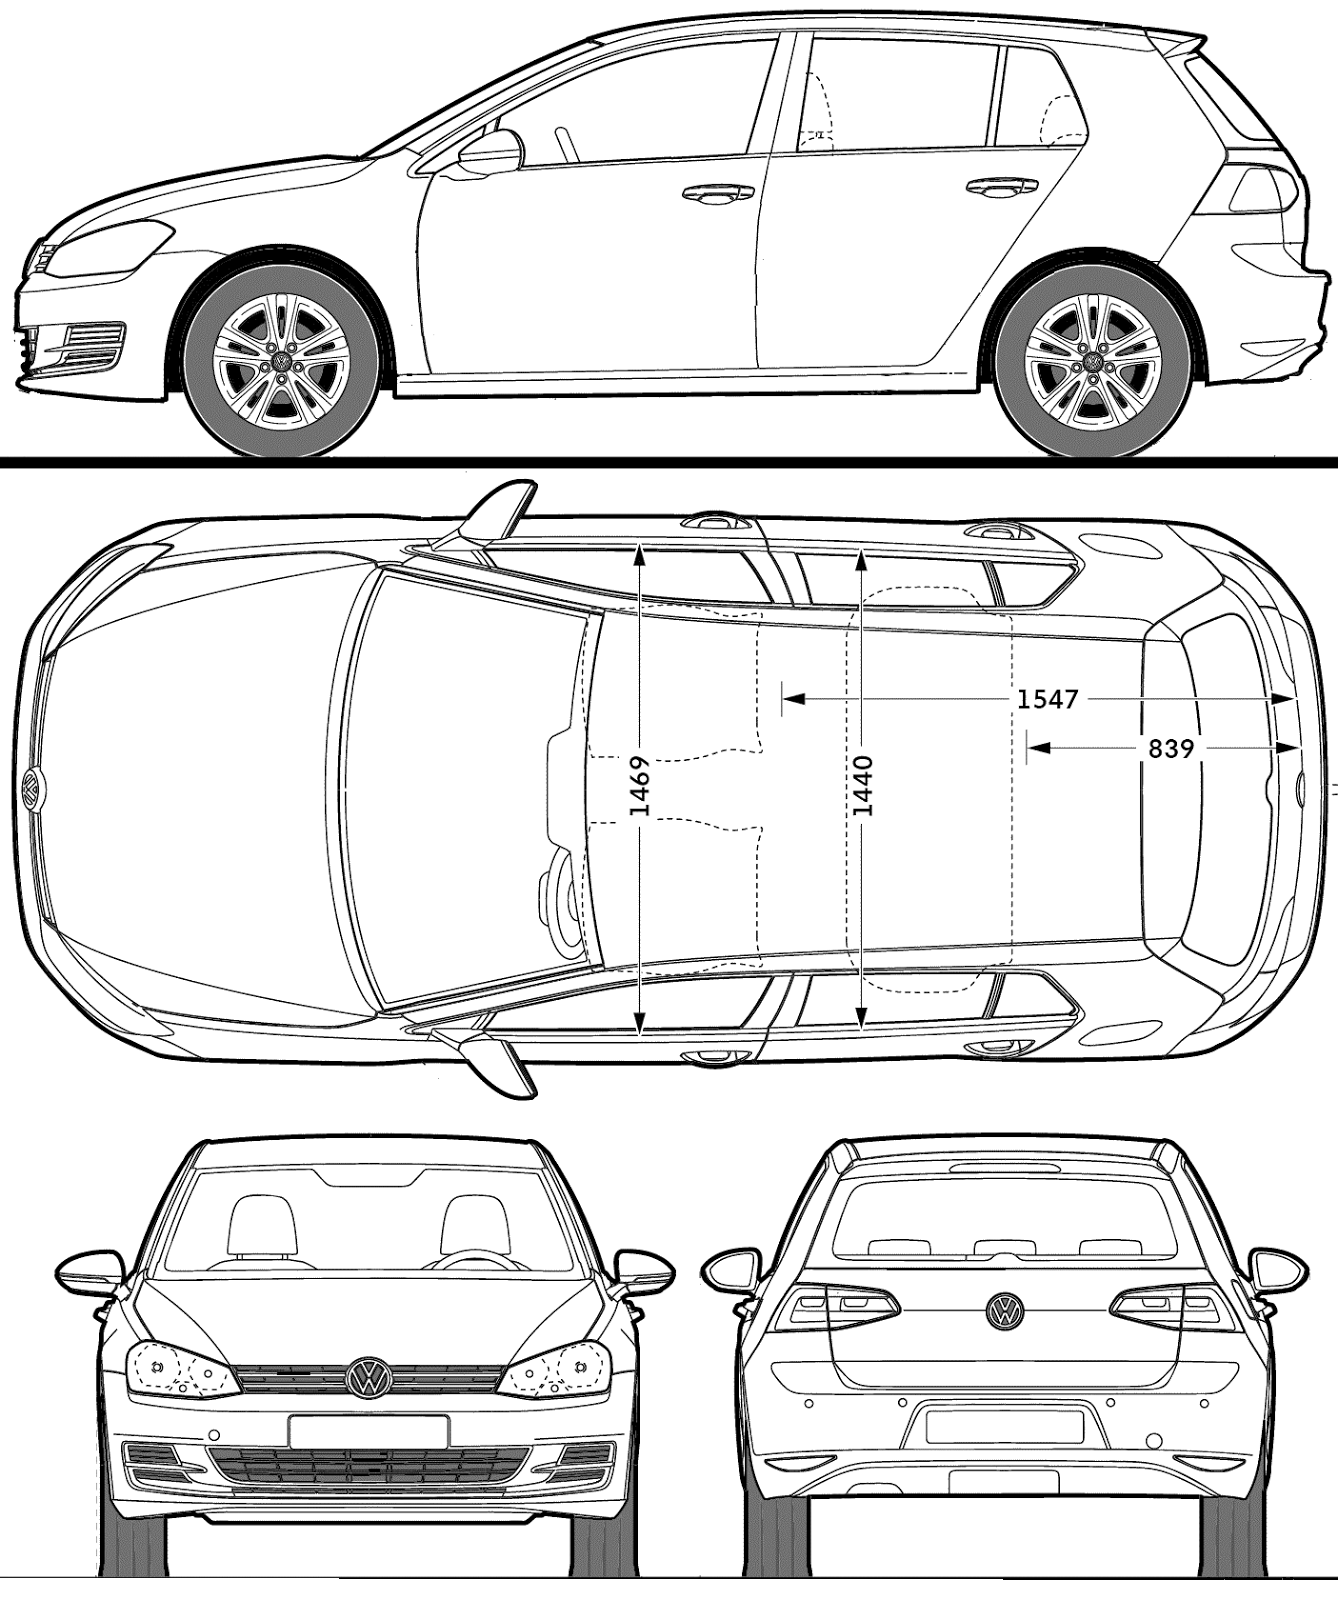 Truck Coloring Sheet in addition Nissan Pickup Z24 Engine Wiring Diagram as well Blu sheet additionally K13076exv99wxcyx3y furthermore Mitsubishi Colt 1 3 1981 Specs And Images. on toyota pickup width